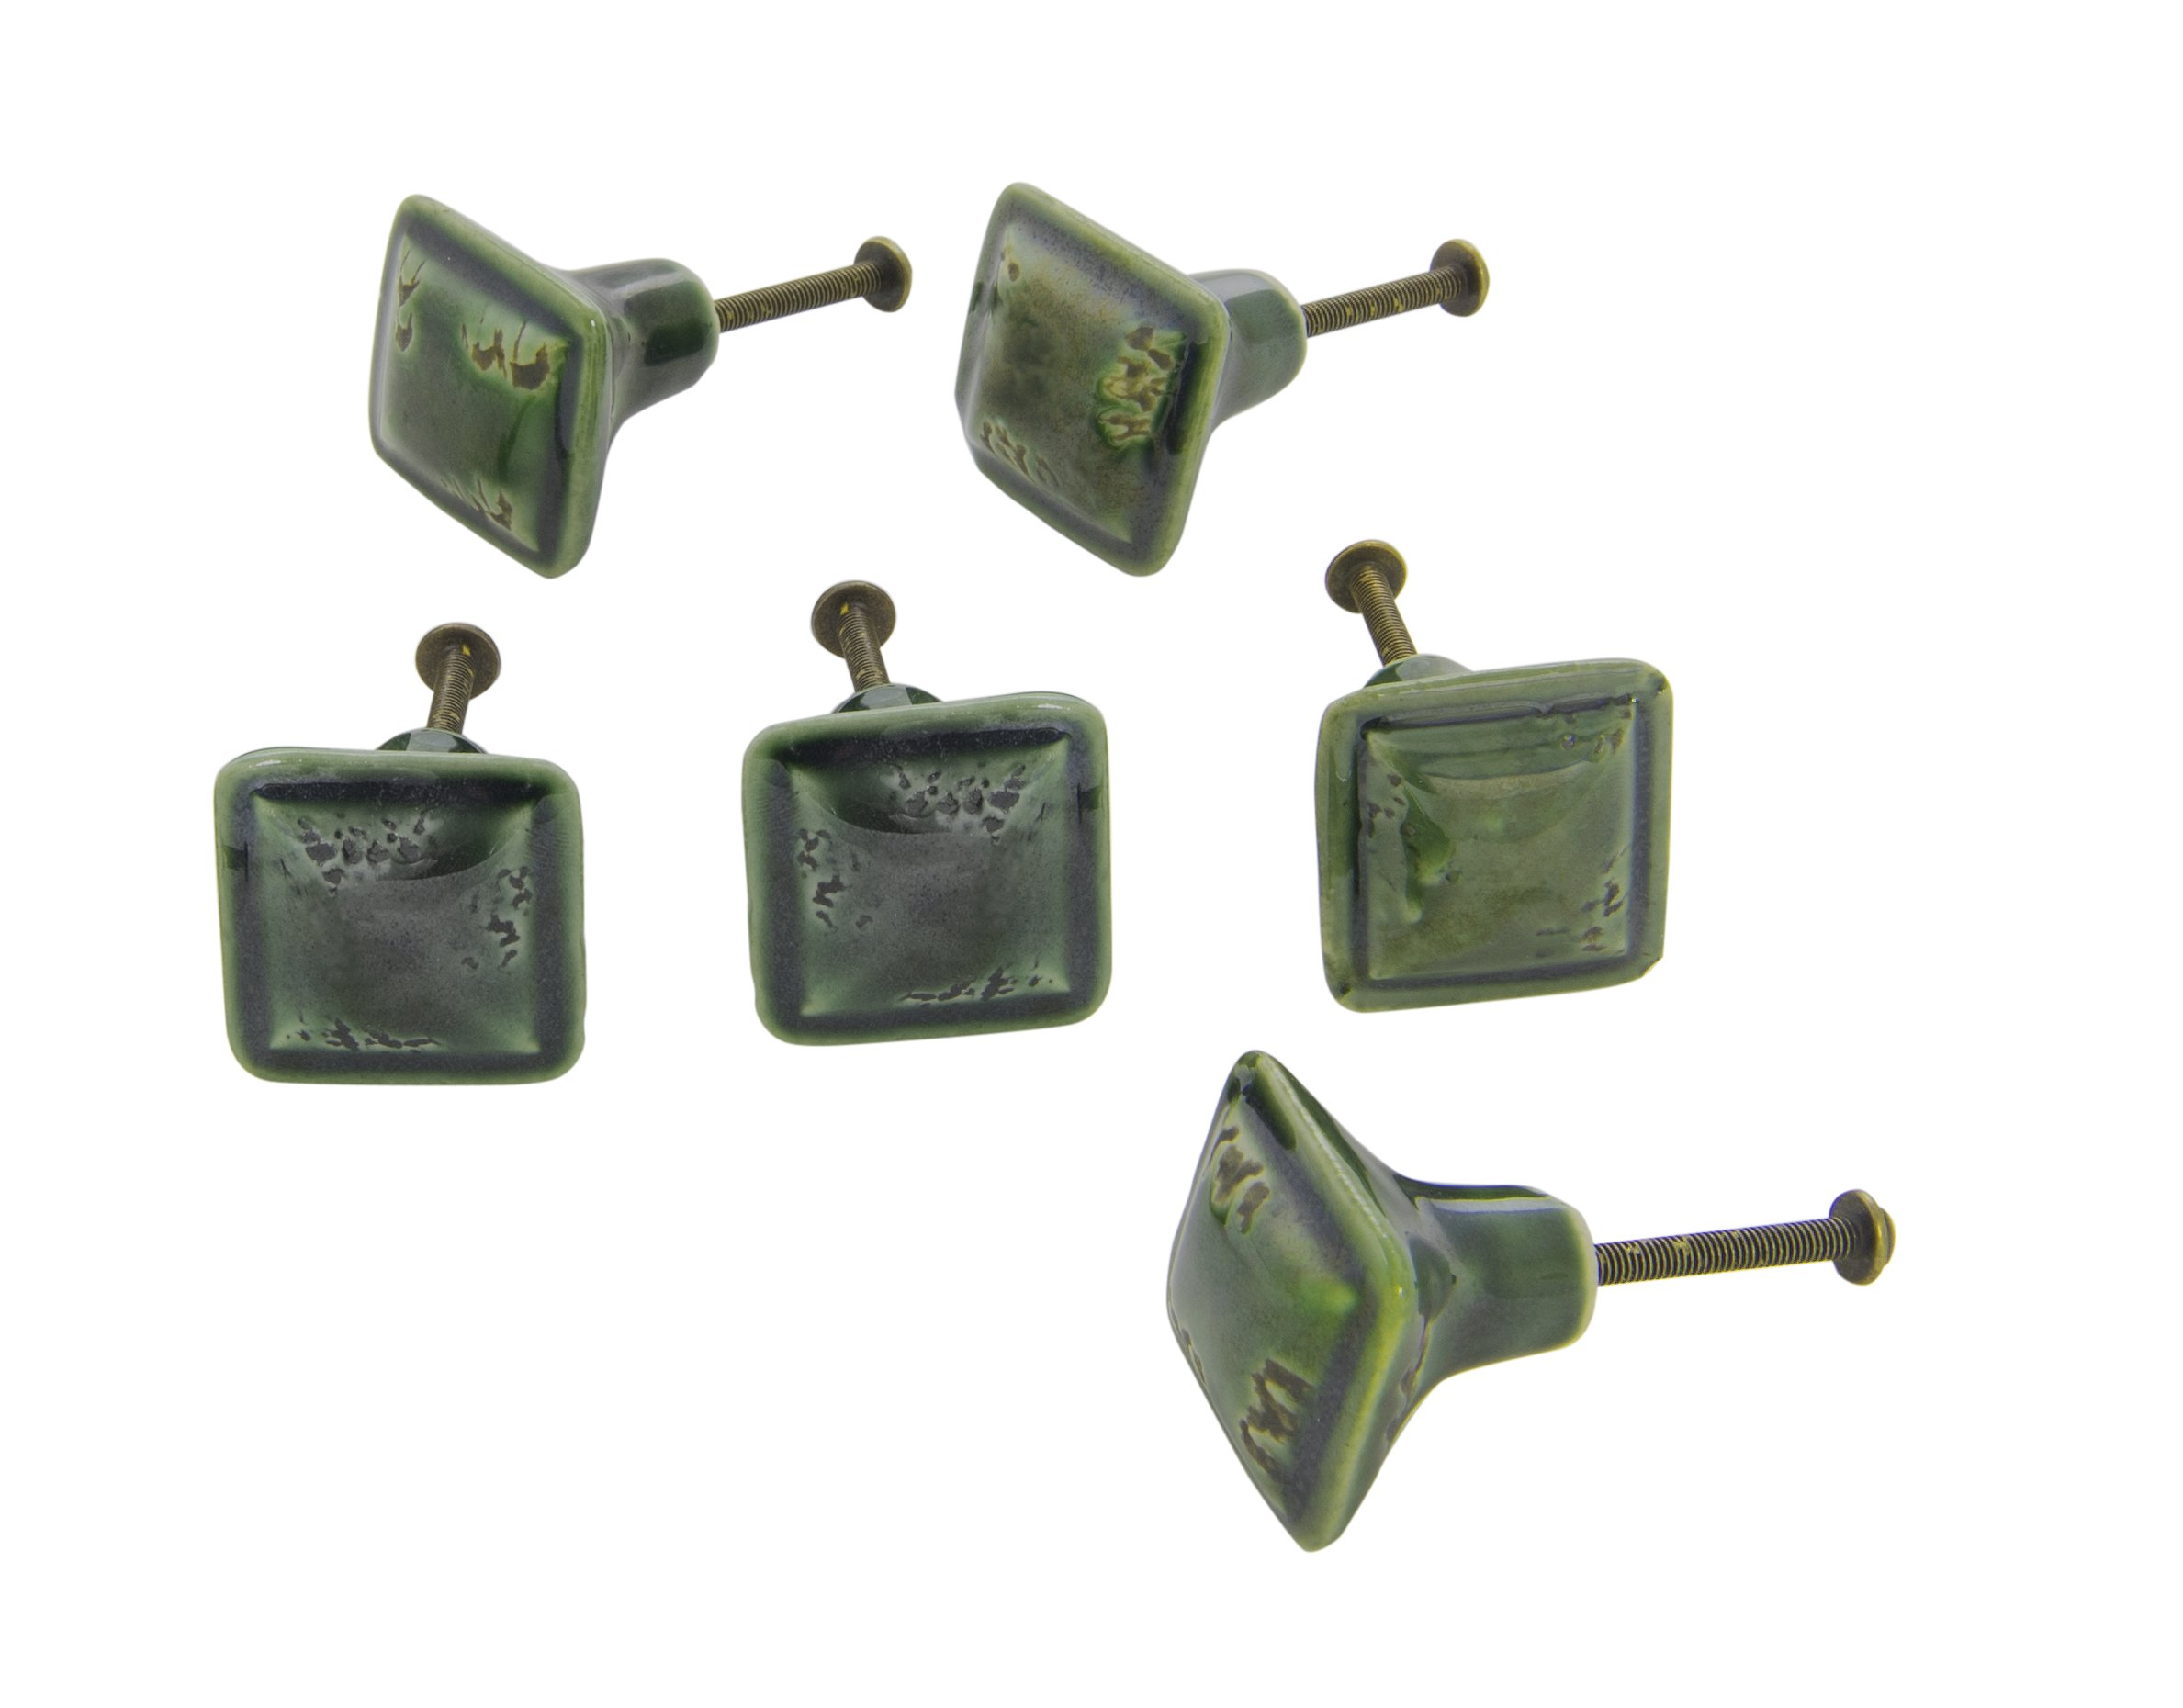 Dritz Home 47038A Ceramic Distressed Square Knob Handcrafted Knobs for Cabinets & Drawers